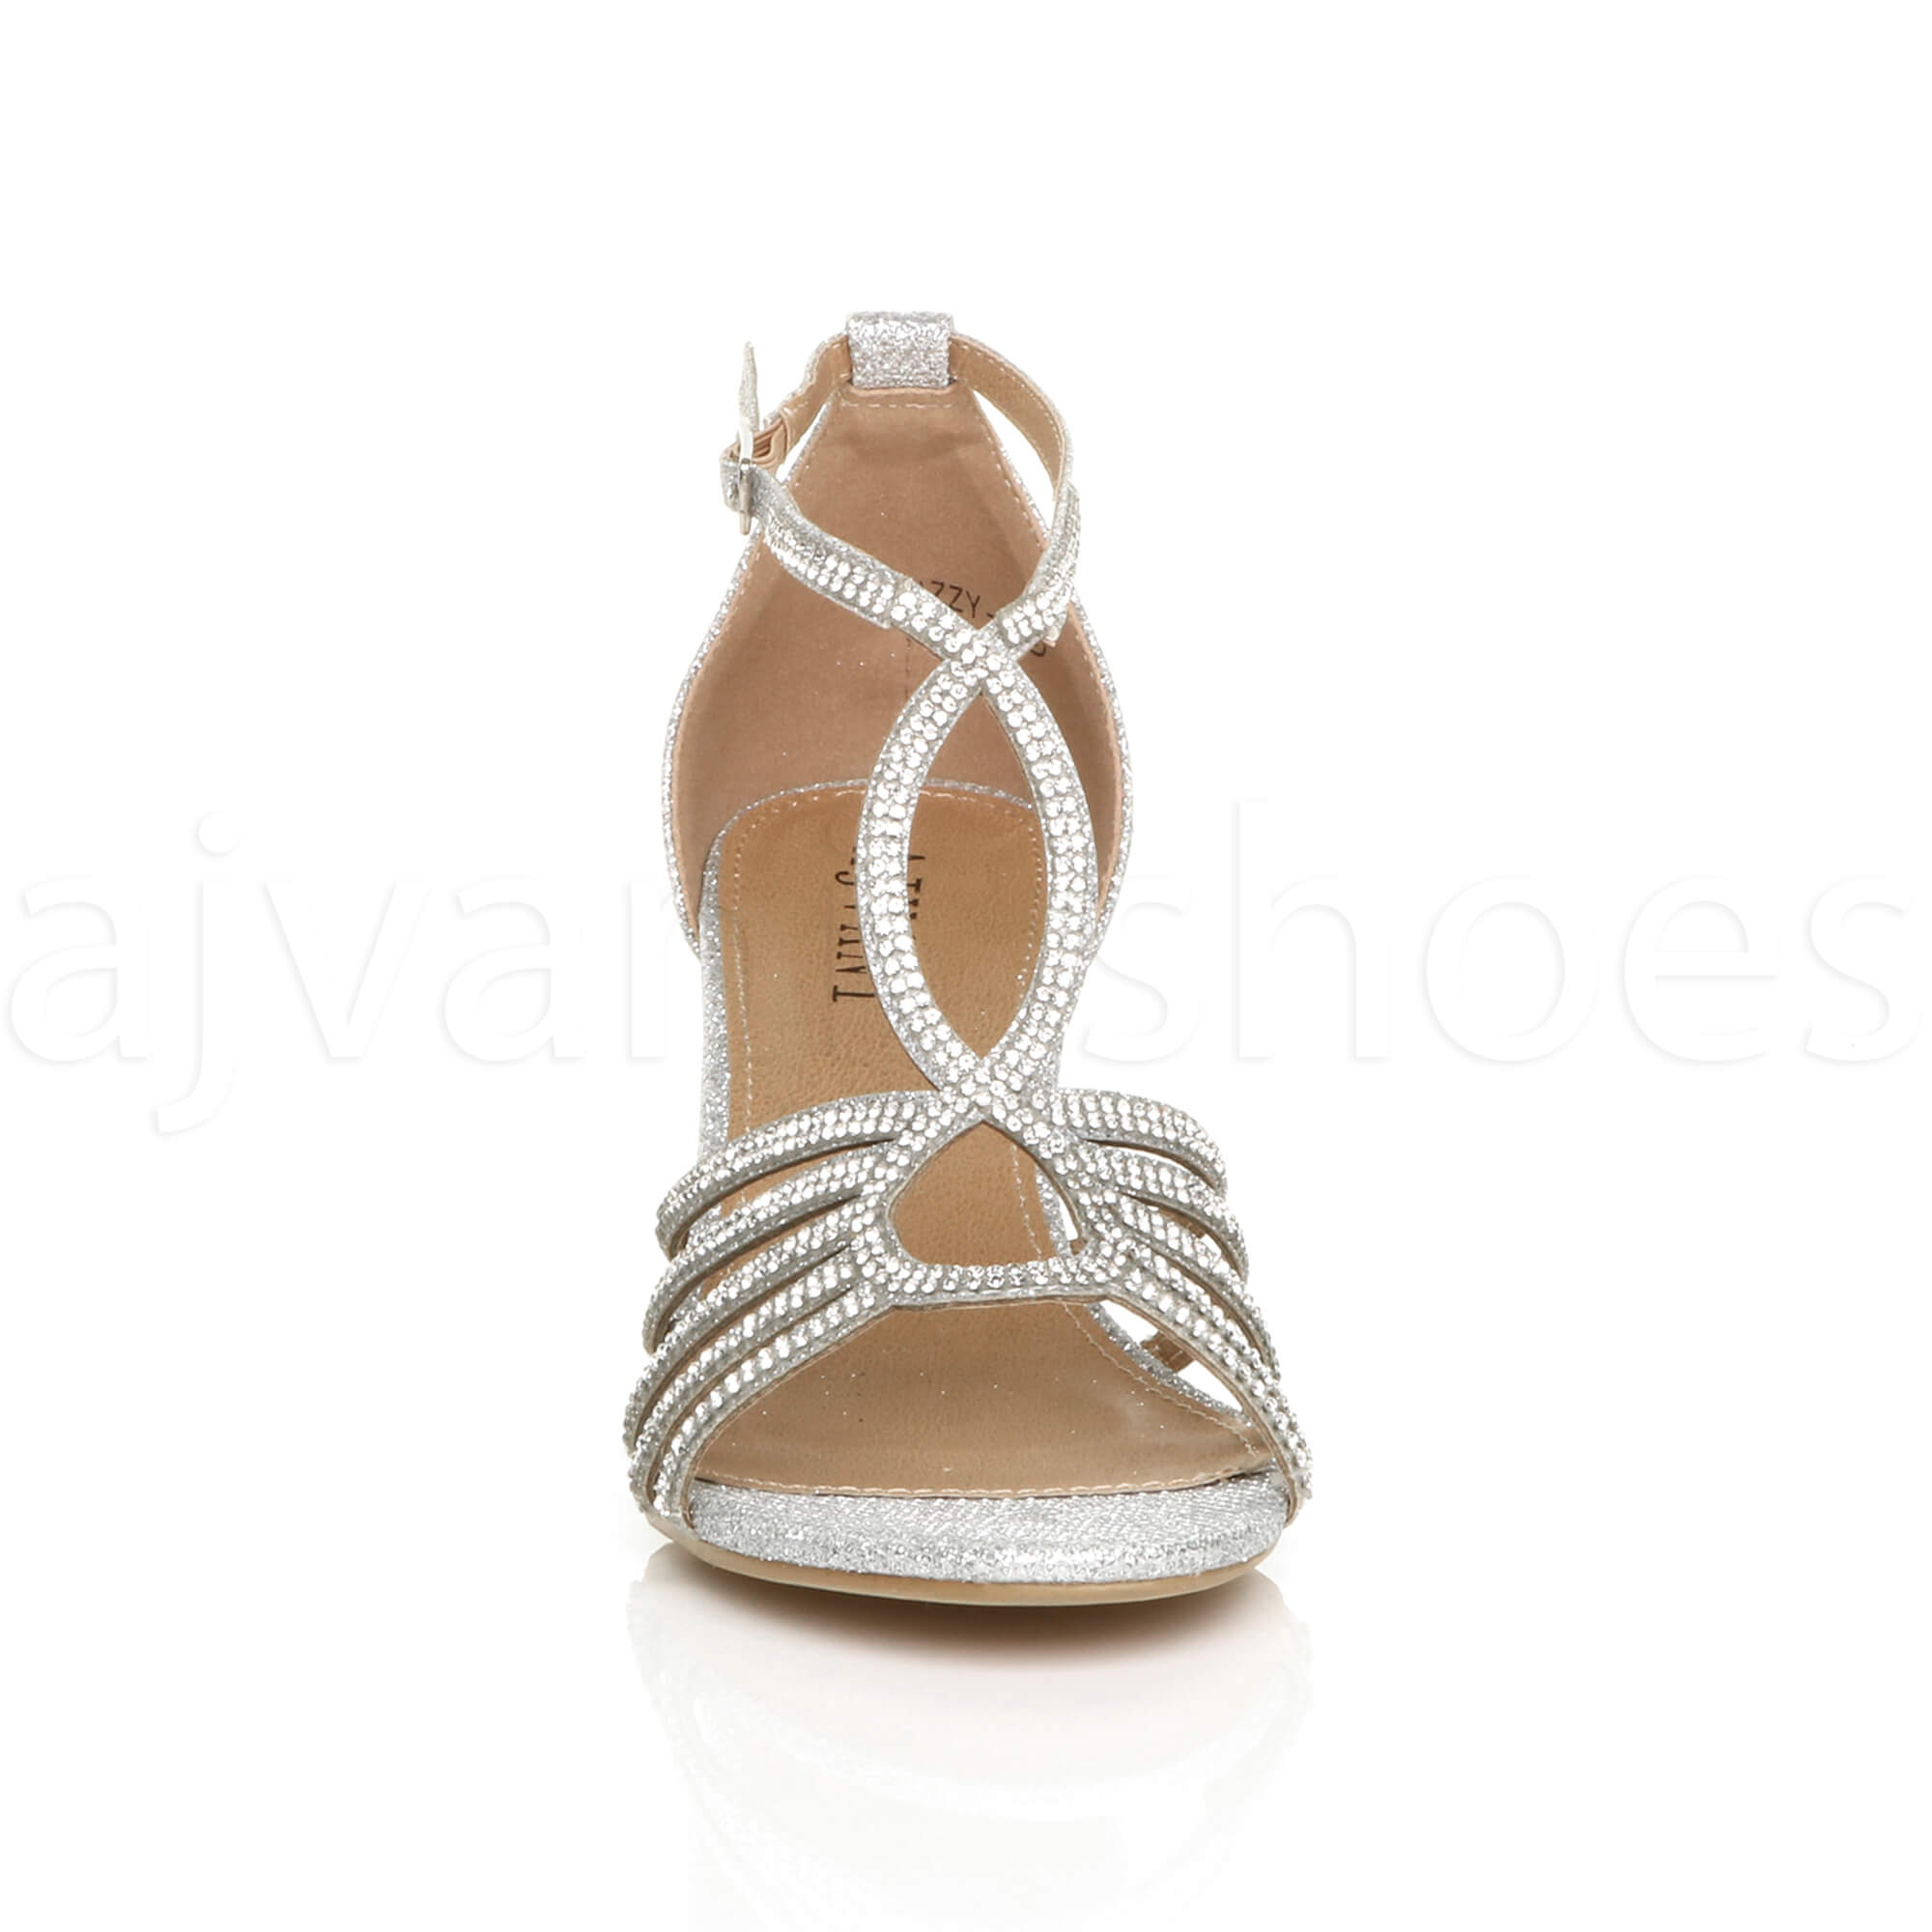 WOMENS LADIES MID HEEL STRAPPY DIAMANTE WEDDING EVENING T-BAR SANDALS SHOES SIZE